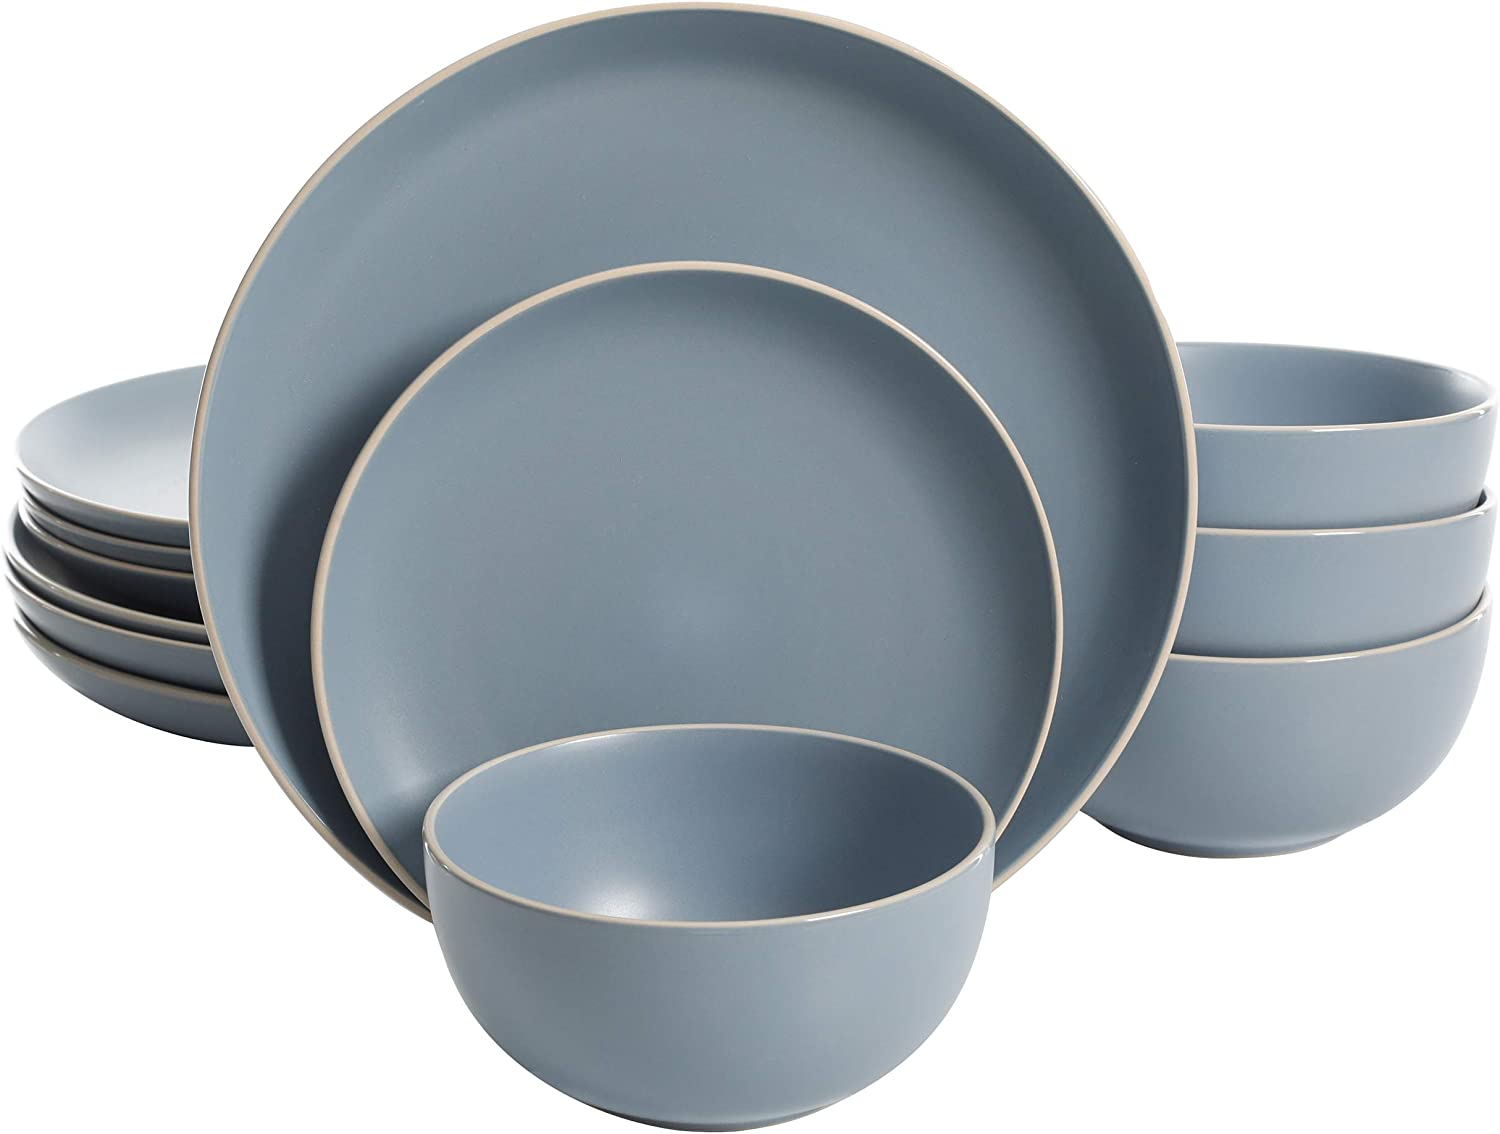 Gibson Home Rockaway Round Stoneware Dinnerware Set, Service for 4 (12pcs), Matte Blue